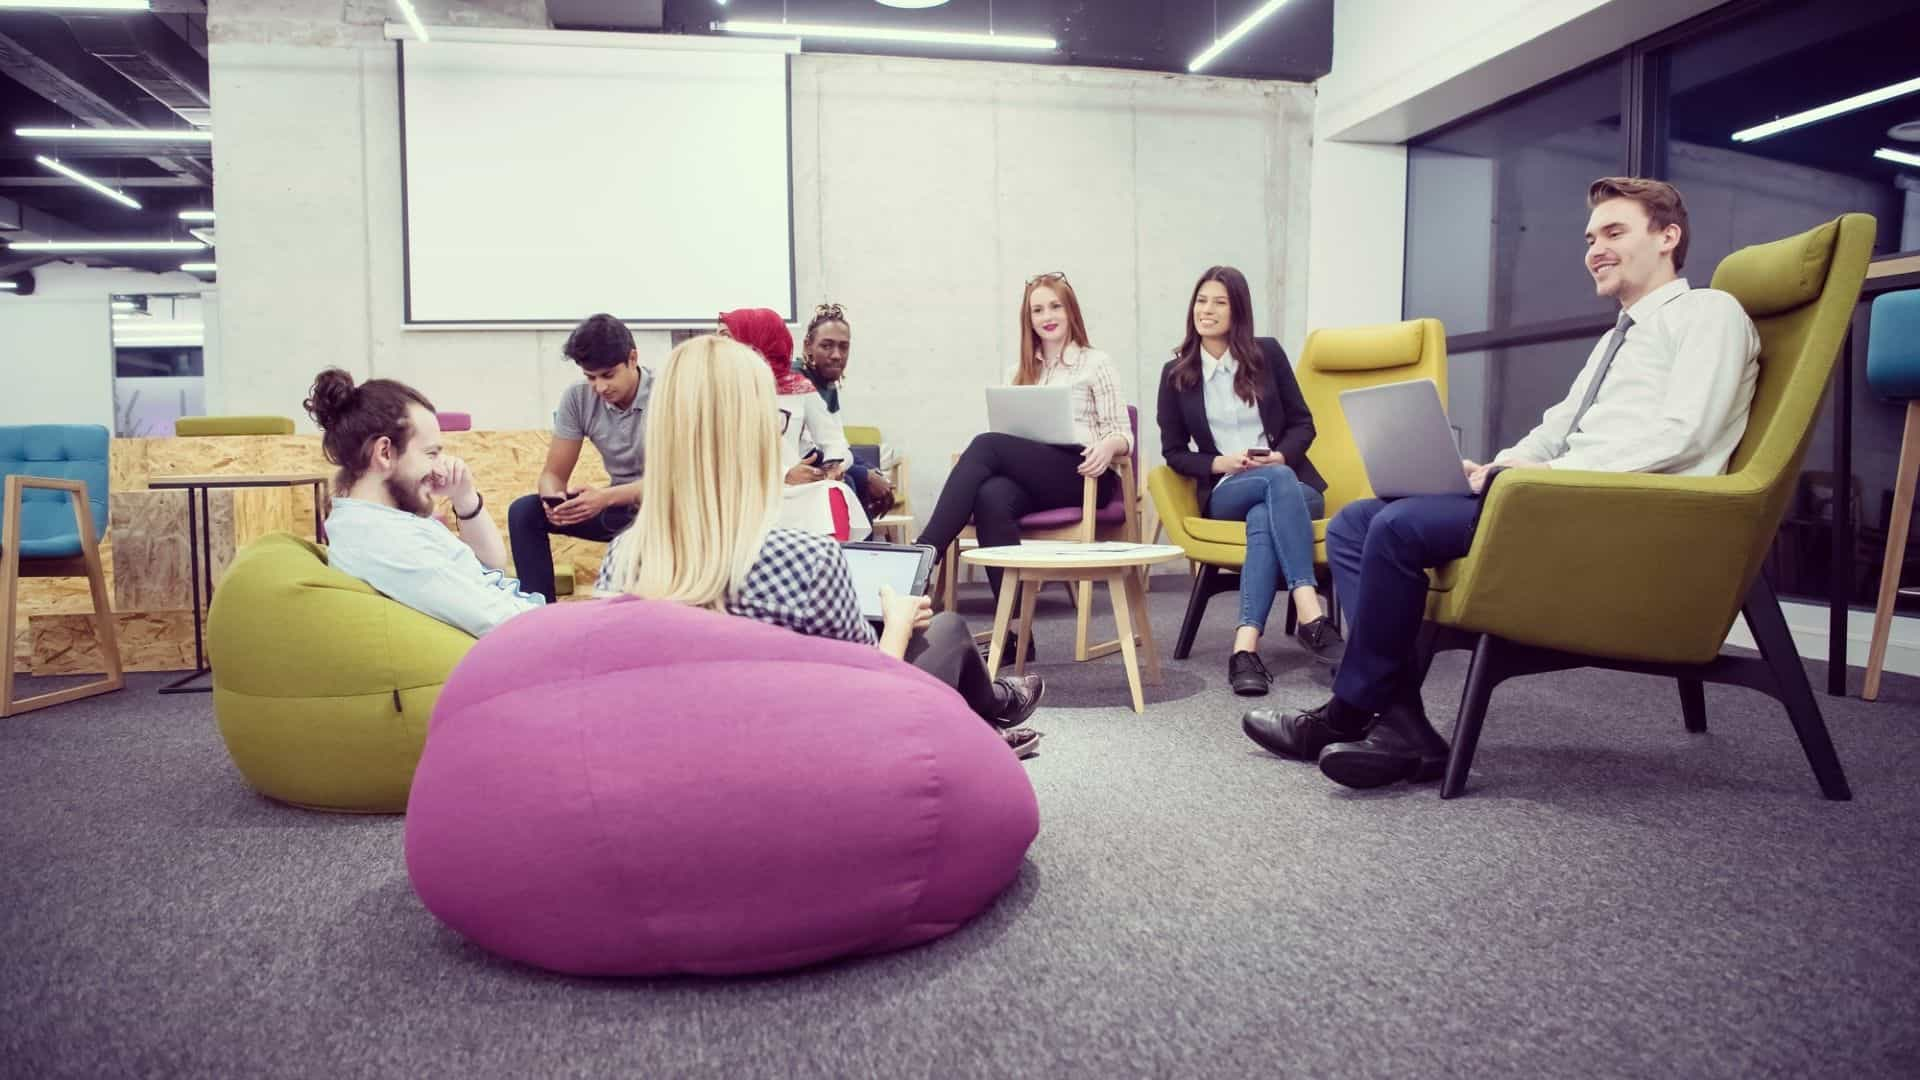 people at work sitting in a meeting in chairs